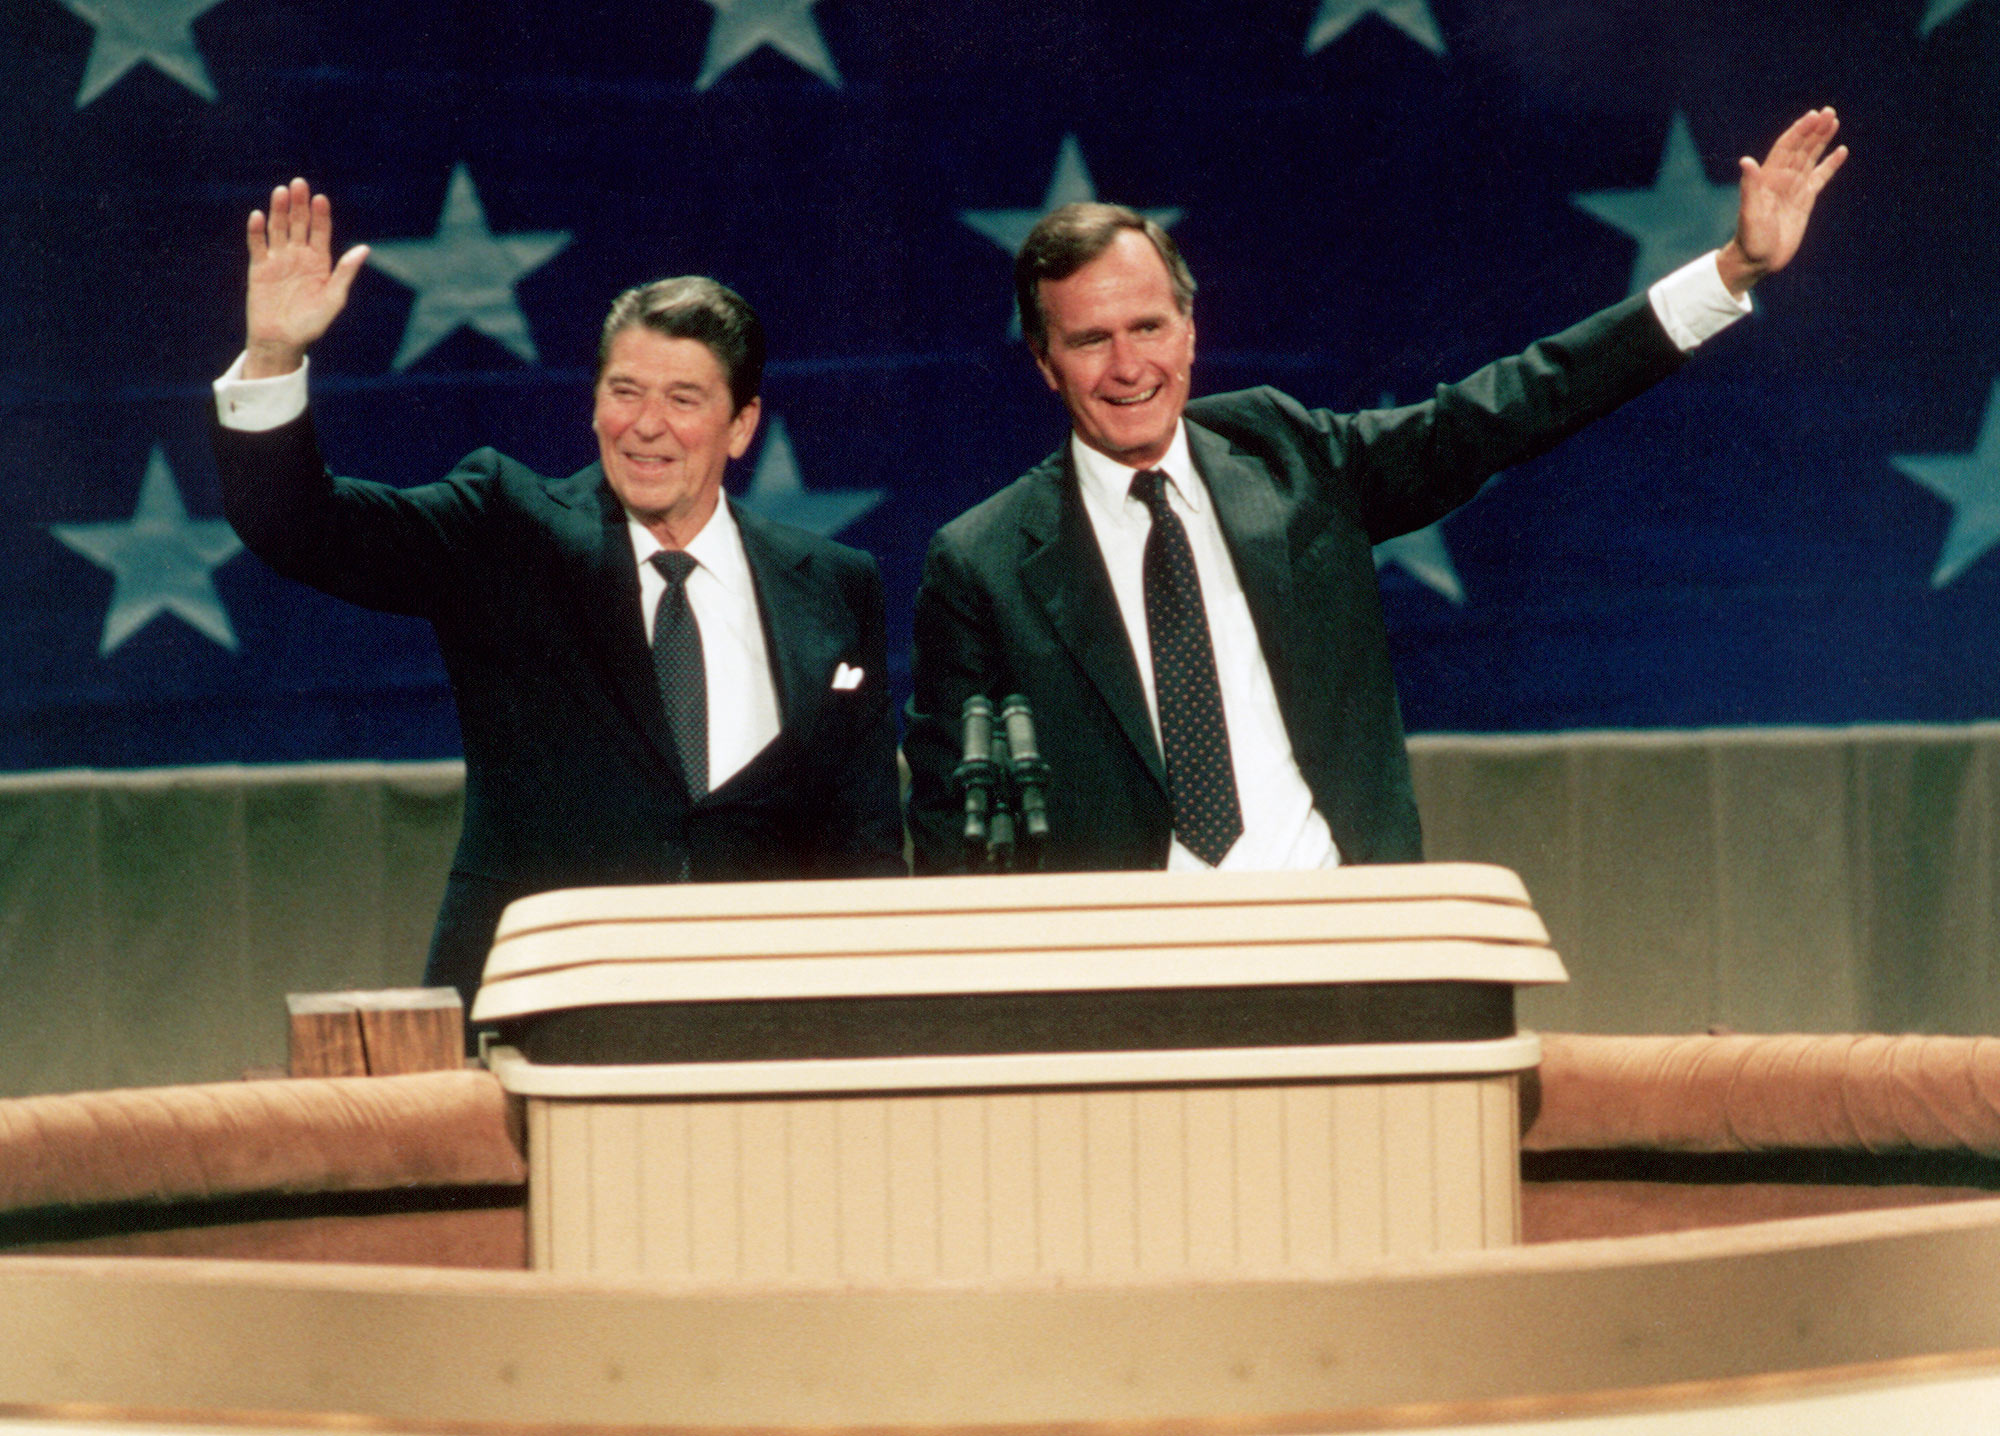 Ronald Reagan and George Bush, the Republican nominees for president and vice president, waving from the podium at the Republican National Convention in 1984. (Photo by © CORBIS/Corbis via Getty Images)